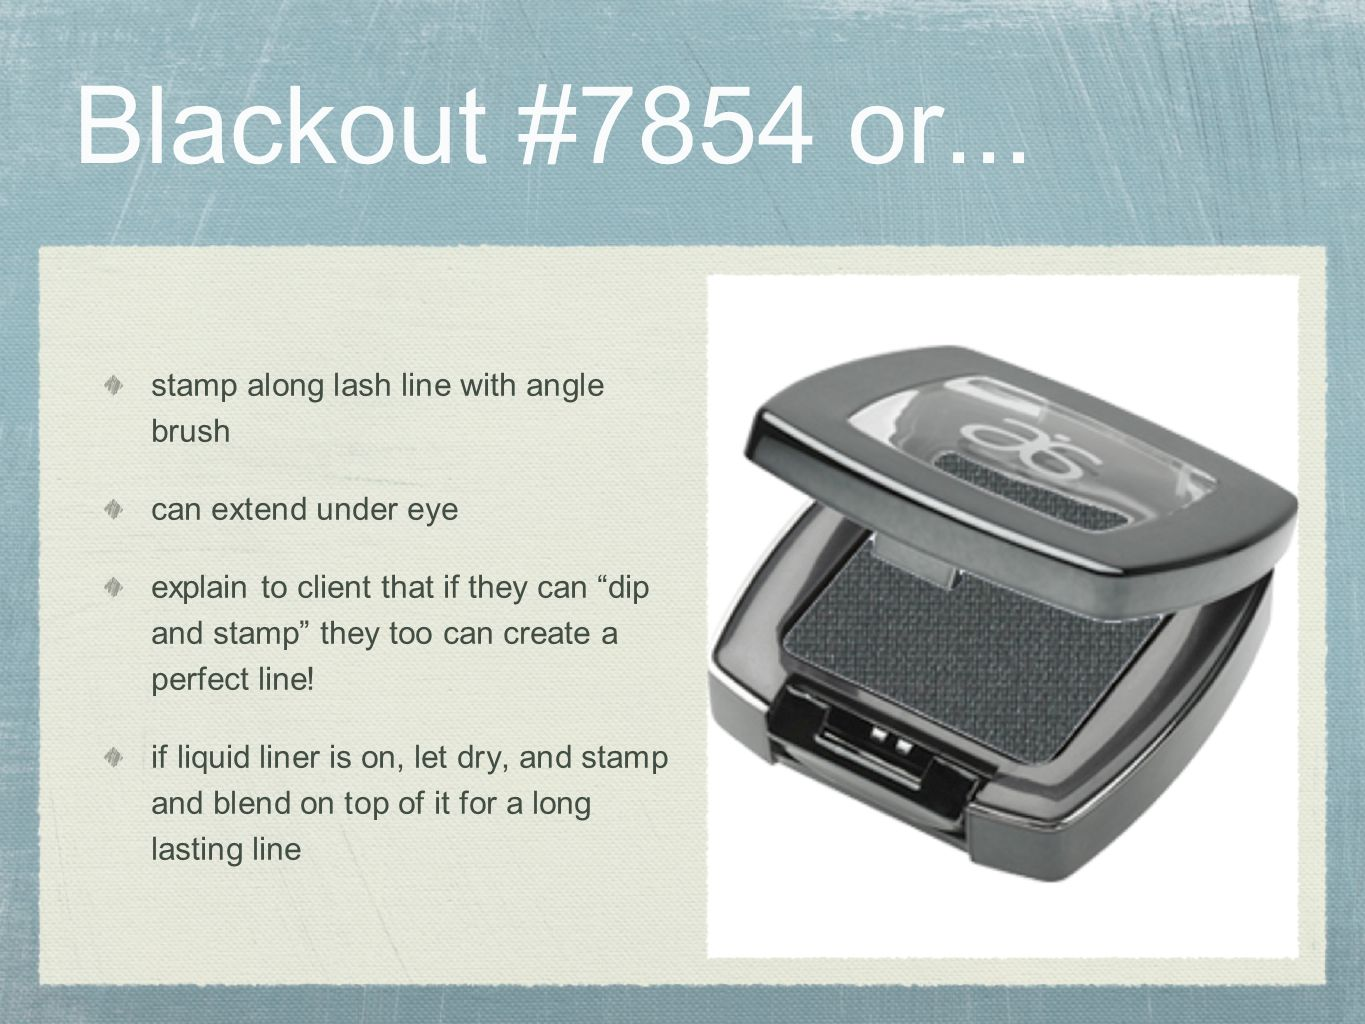 Blackout #7854 or... stamp along lash line with angle brush